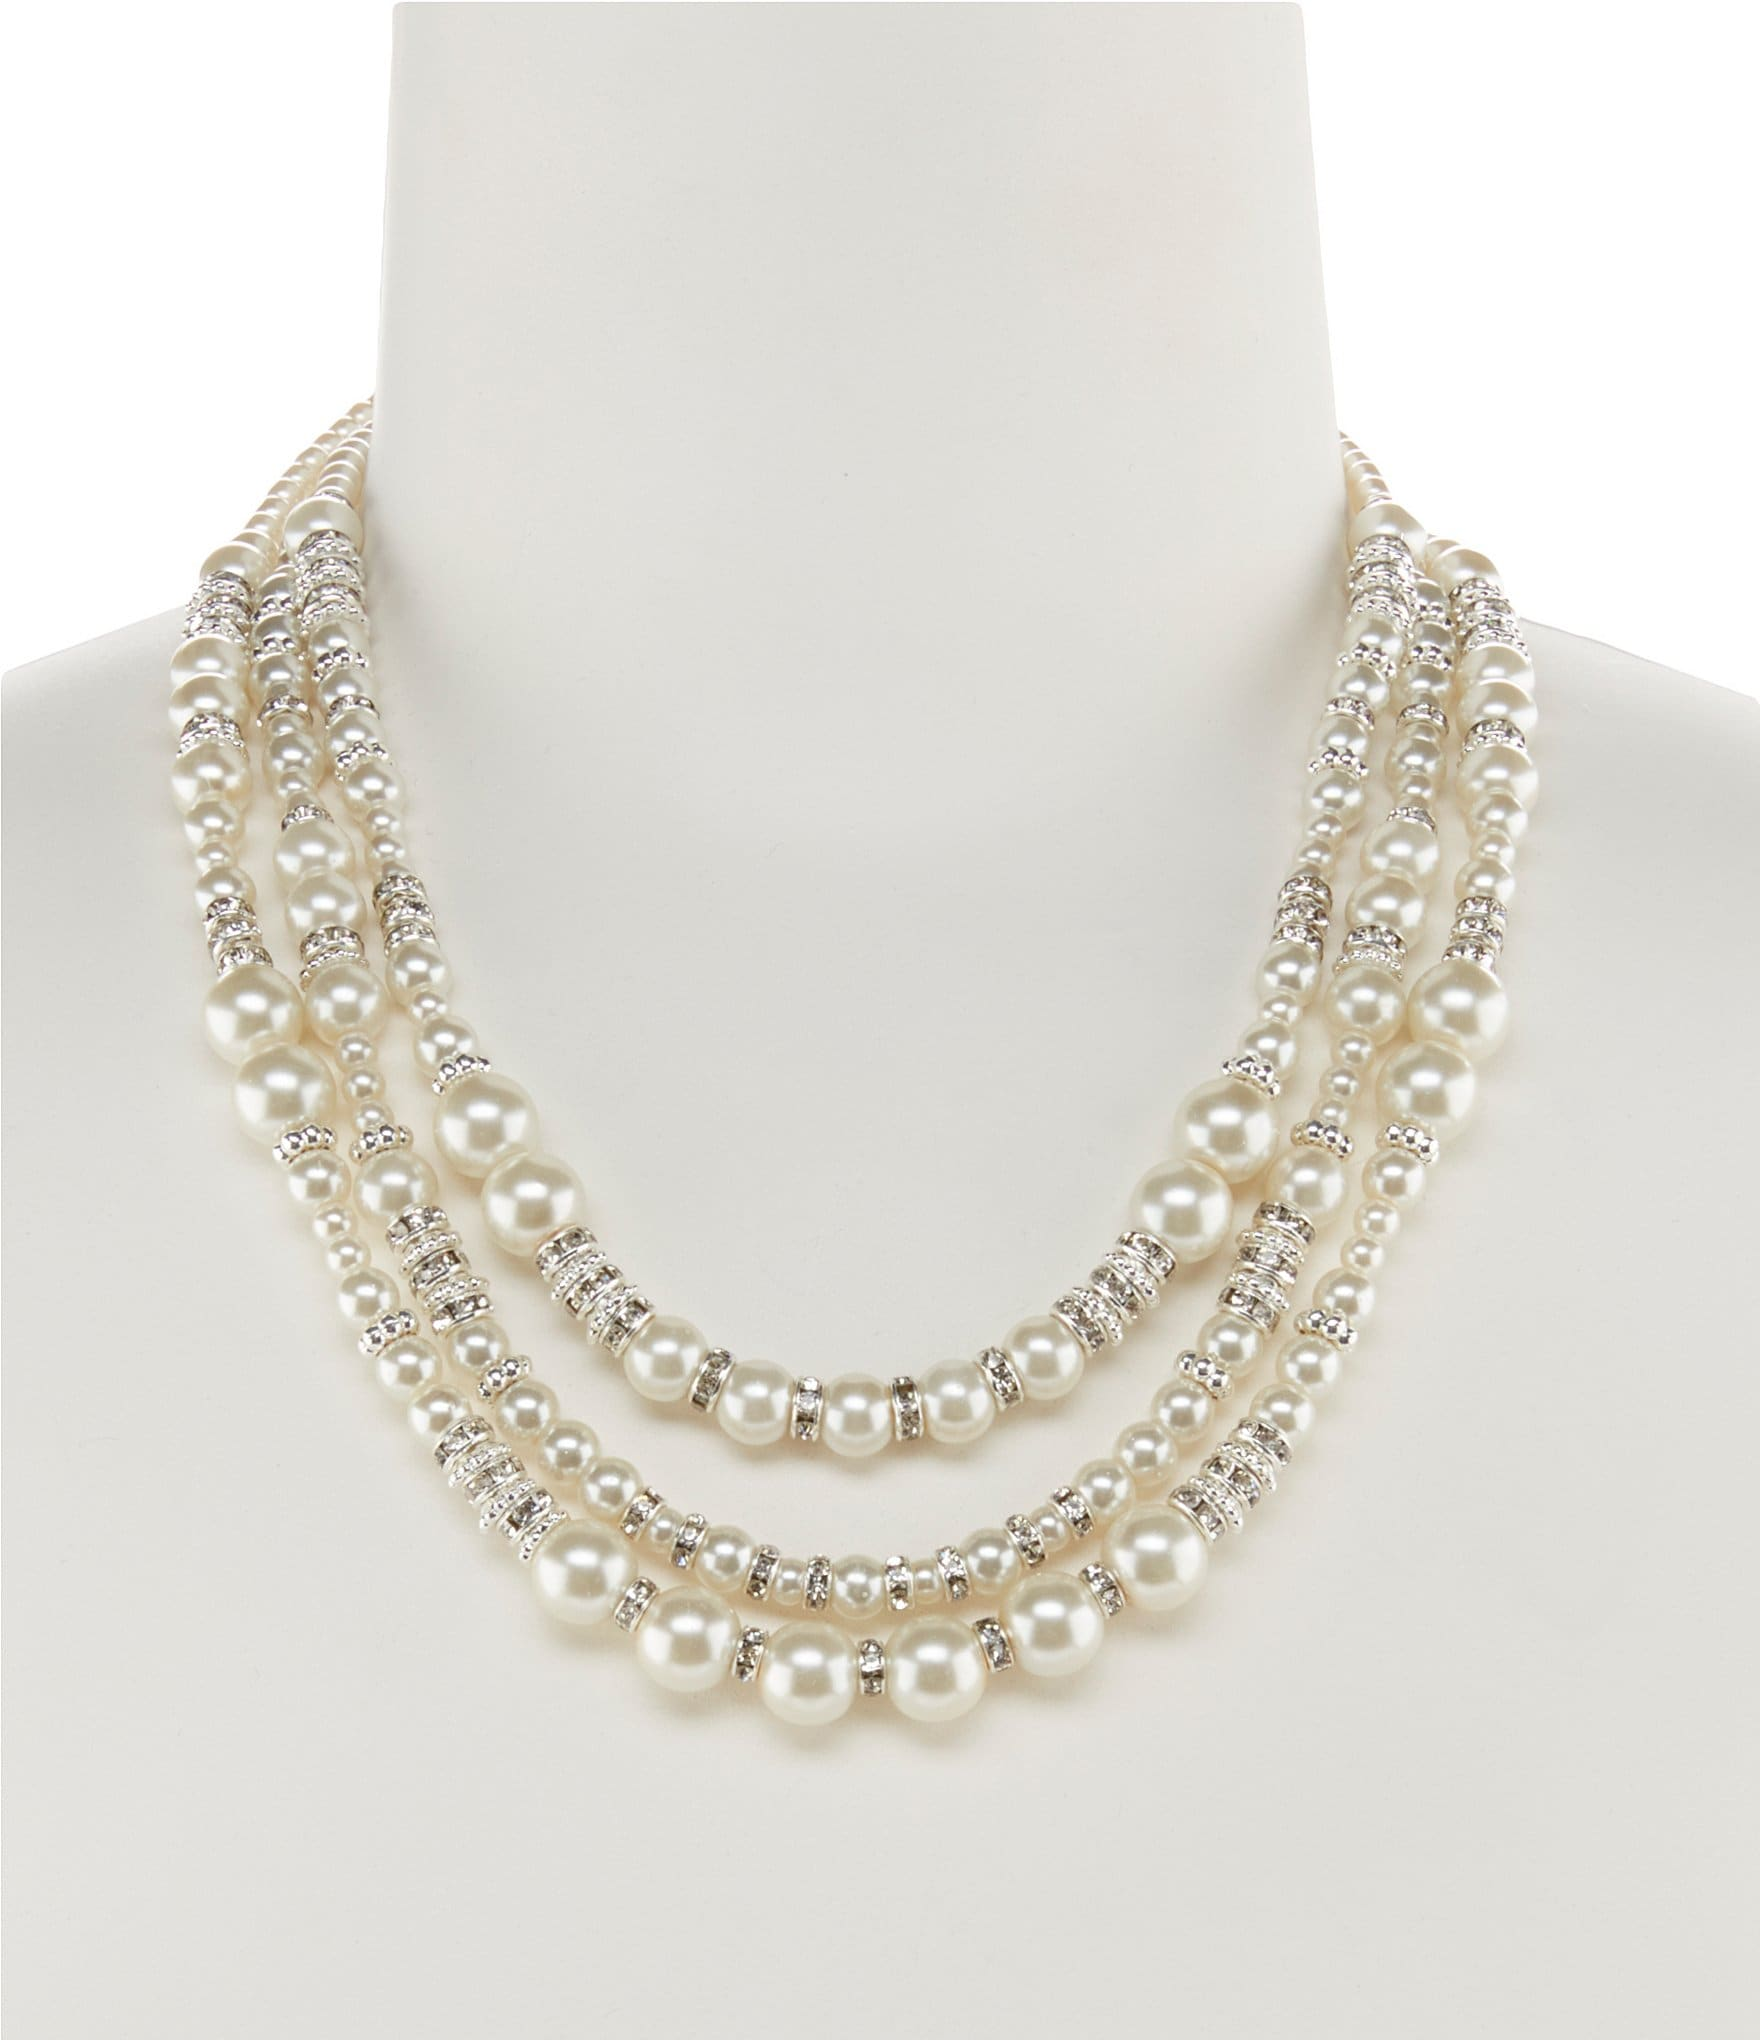 e90794c7d Women's Pearl Necklaces | Dillard's